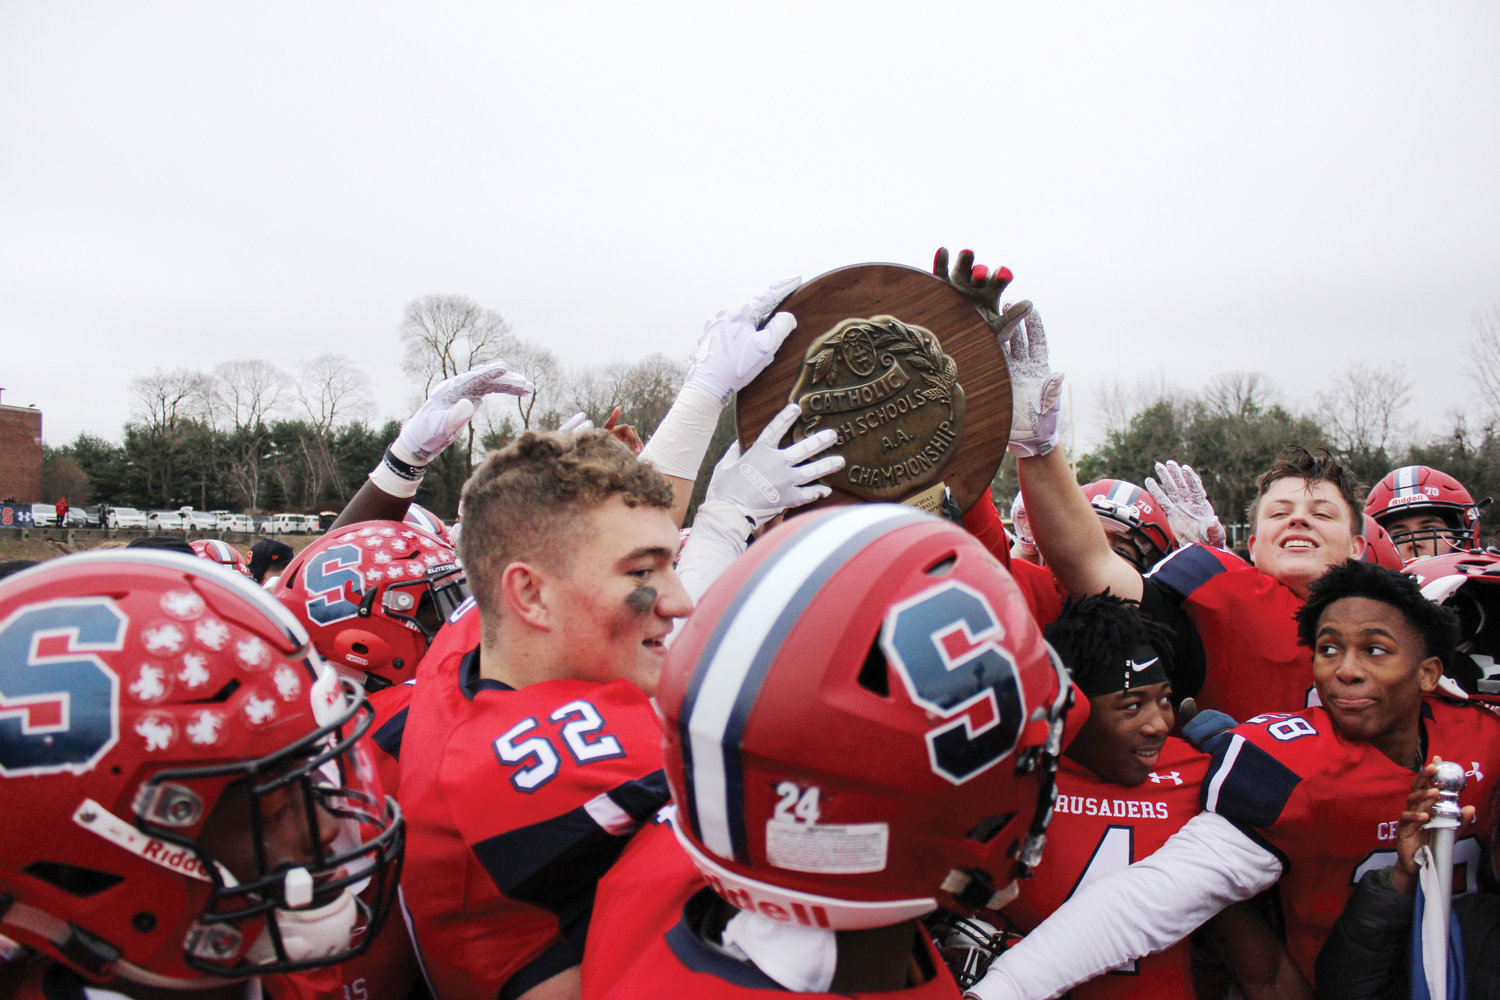 Archbishop Stepinac players celebrate winning a second consecutive Catholic high school state football title and third in four years with a 49-7 victory over St. Francis of Athol Springs, in a game in White Plains Nov. 24.